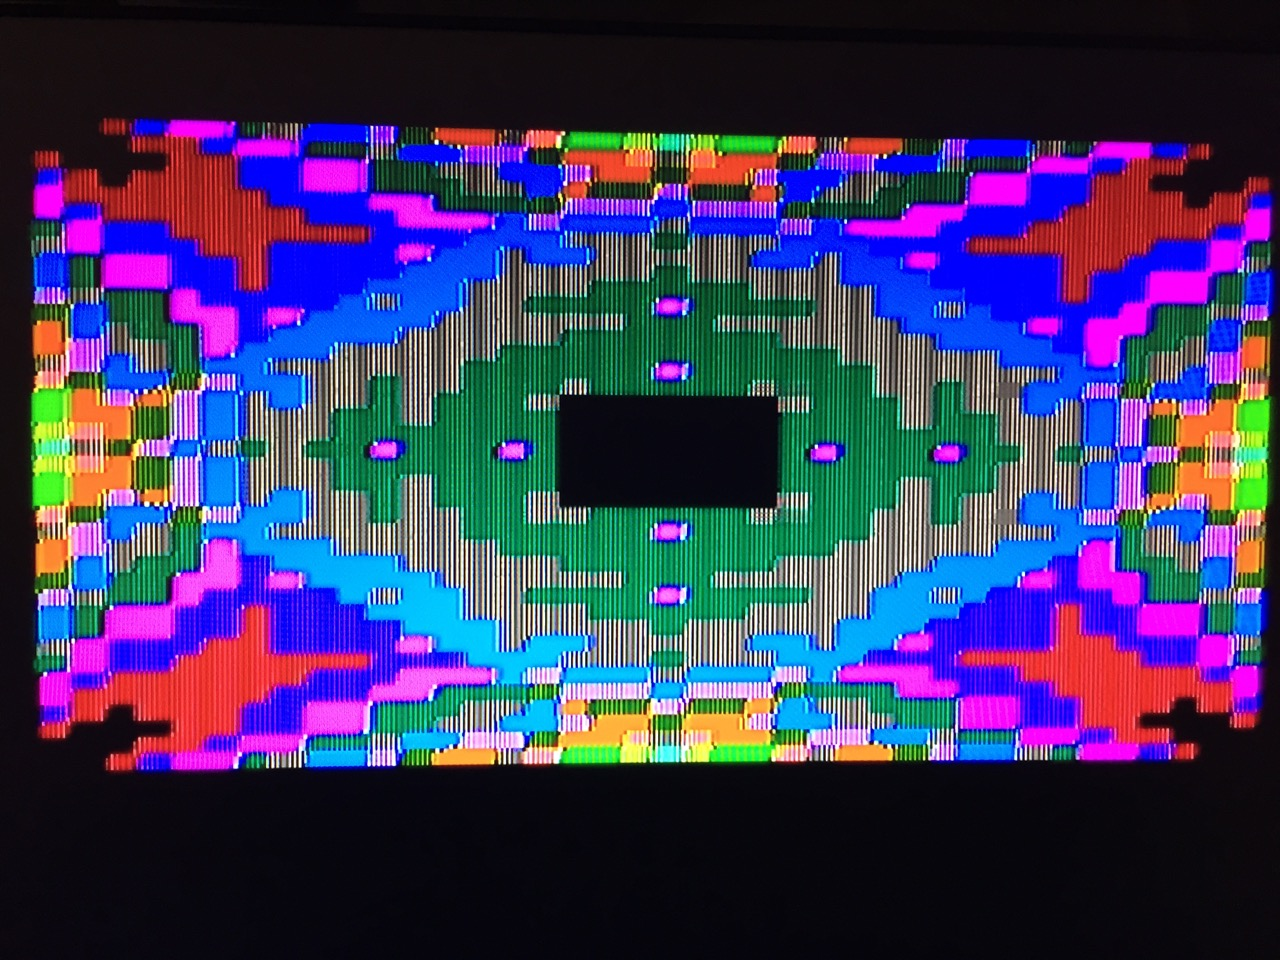 Color Demo from DOS 3.3 Disk: Kaleidoscope